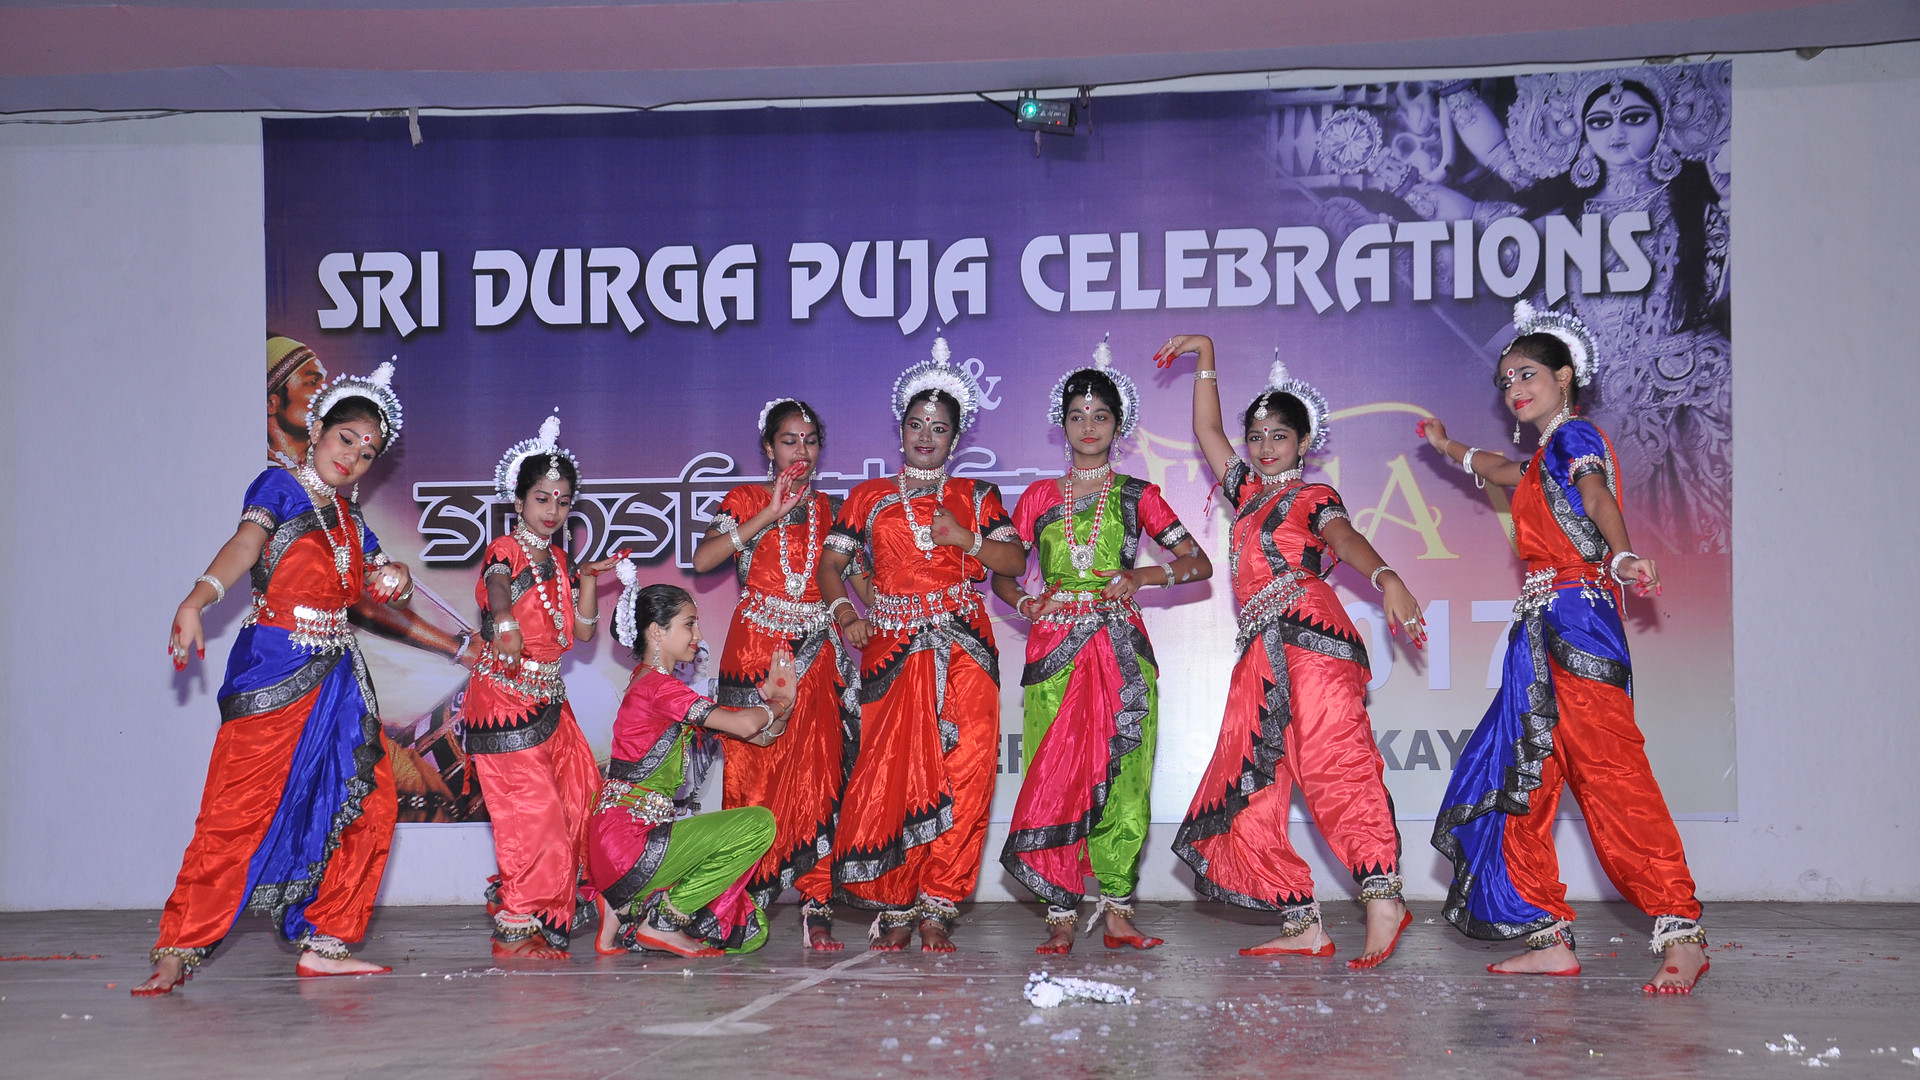 Odissi performance by students of our school on the occasion of Durga Puja